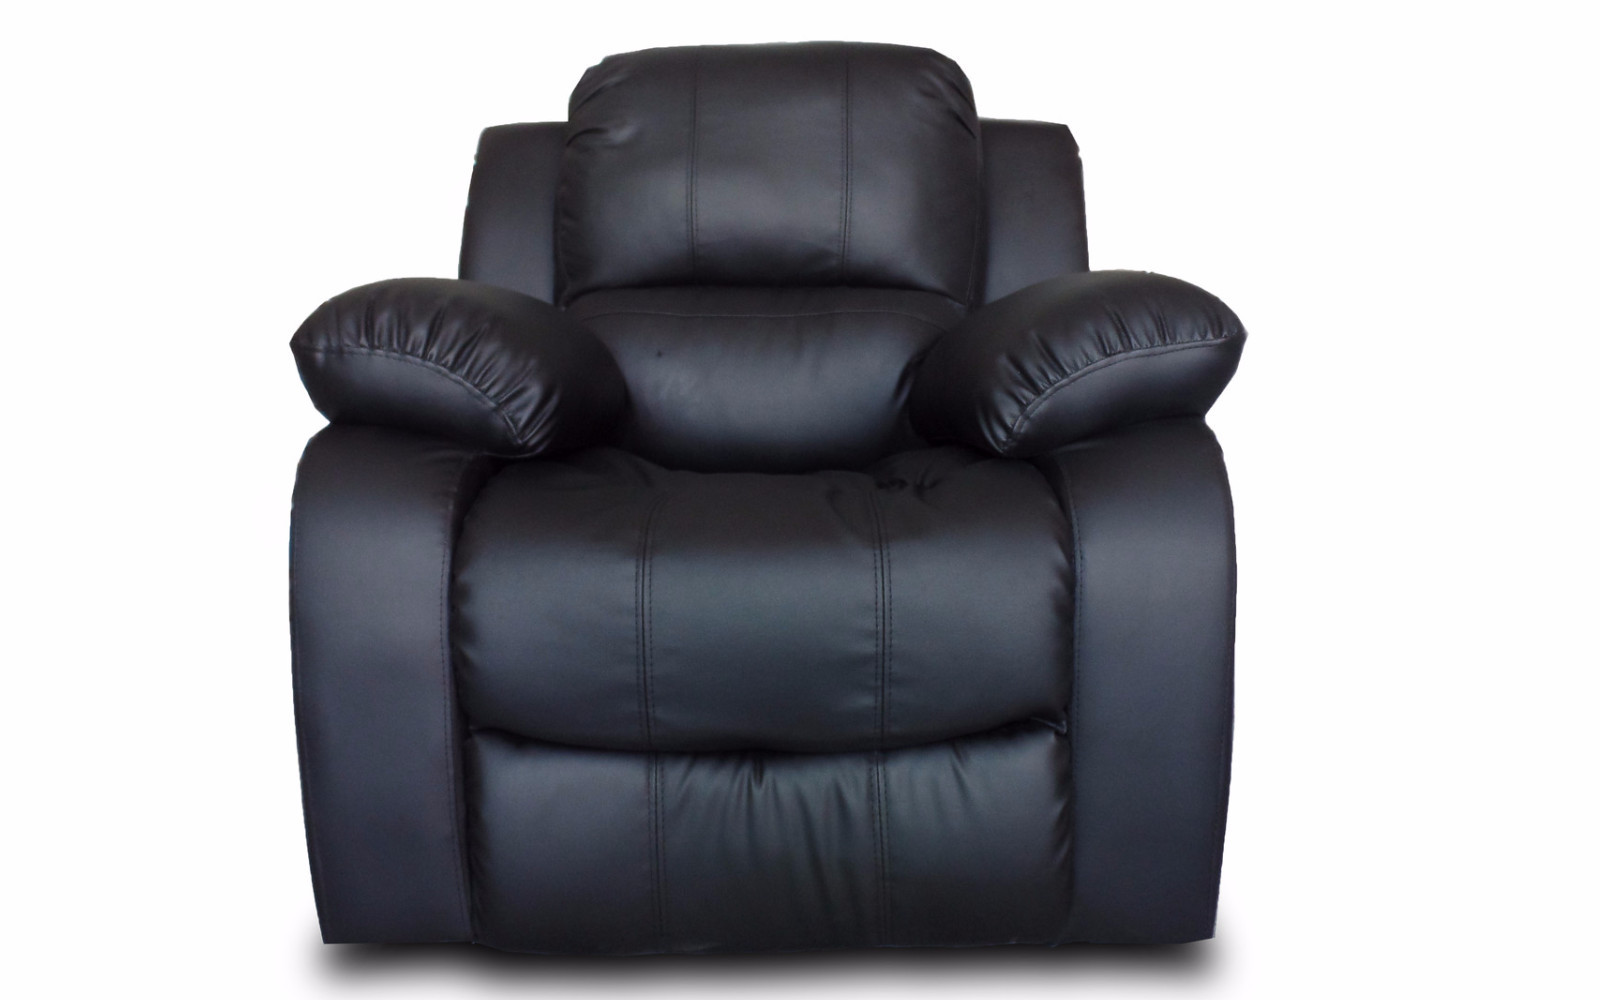 Product Image Classic Reclining Overstuffed Single Seat Bonded Leather  Recliner Chair